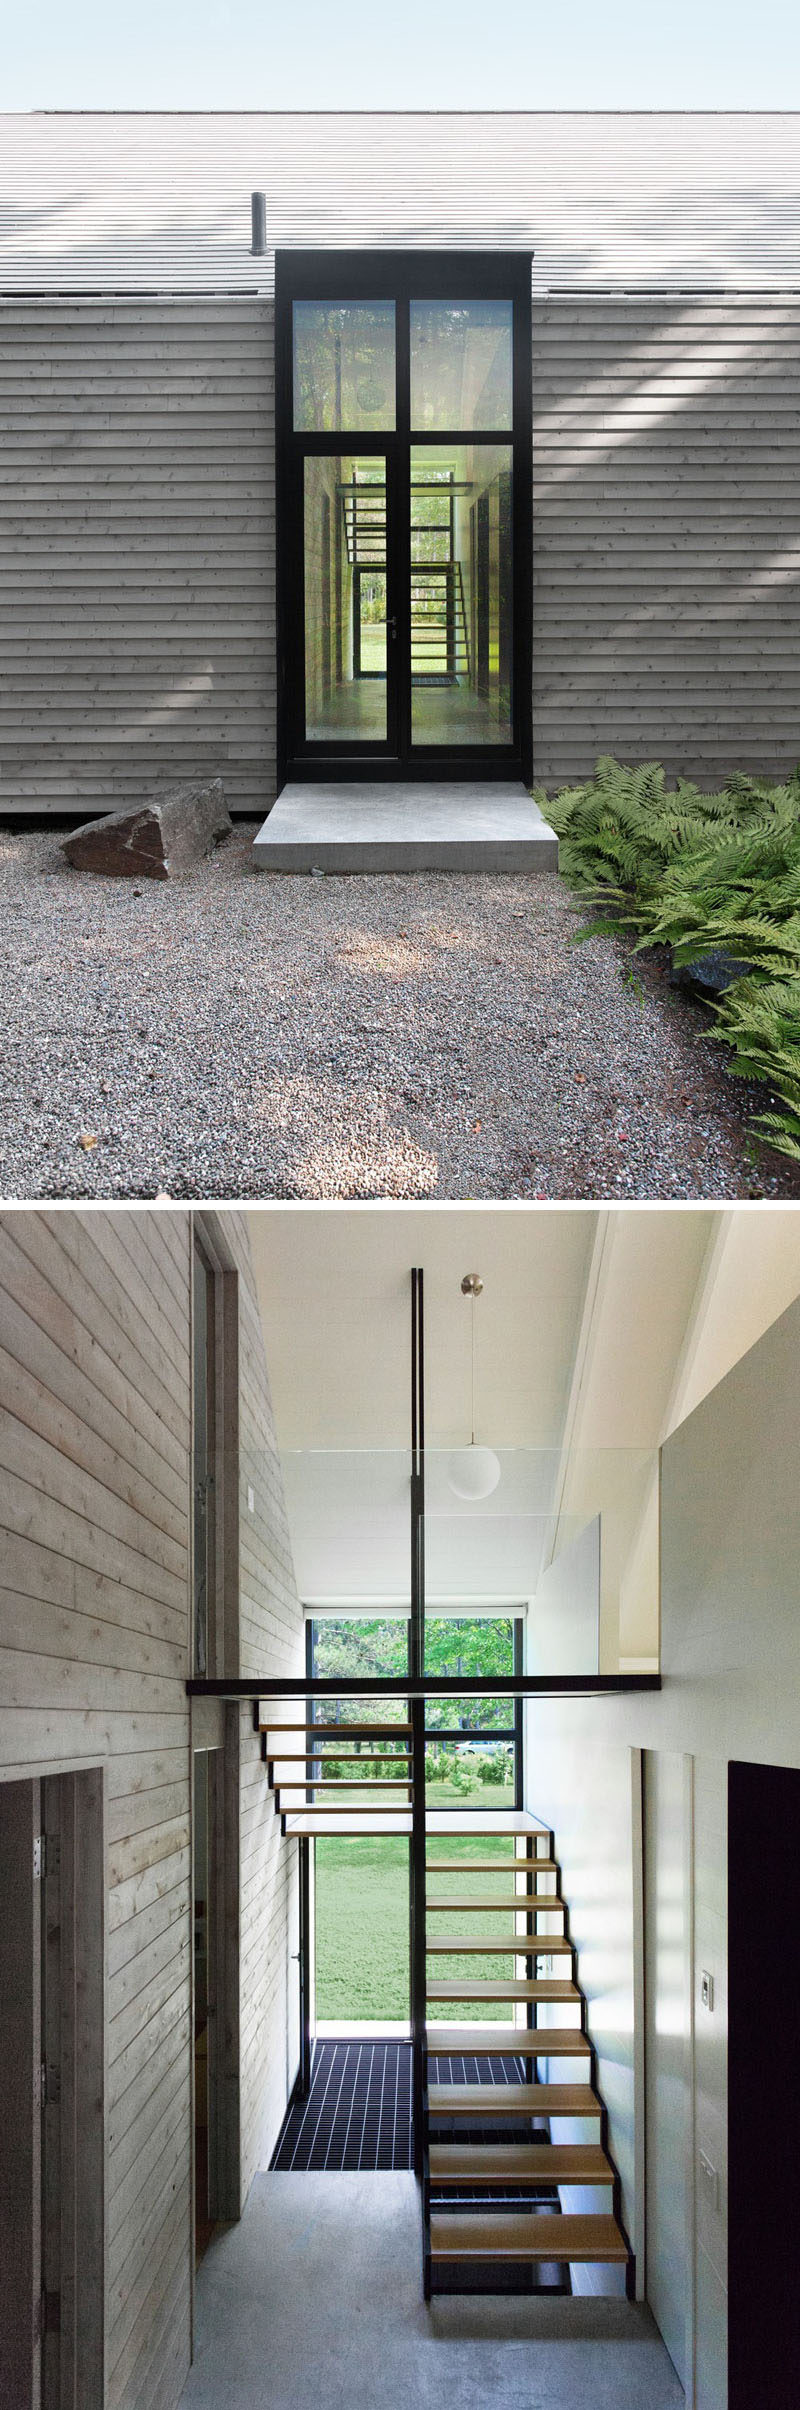 This modern vacation house features wood construction on both the exterior and interior, with a single large gable that covers all of the living spaces. Stepping inside, there's a staircase that connects the various floors of the home. #Entryway #Stairs